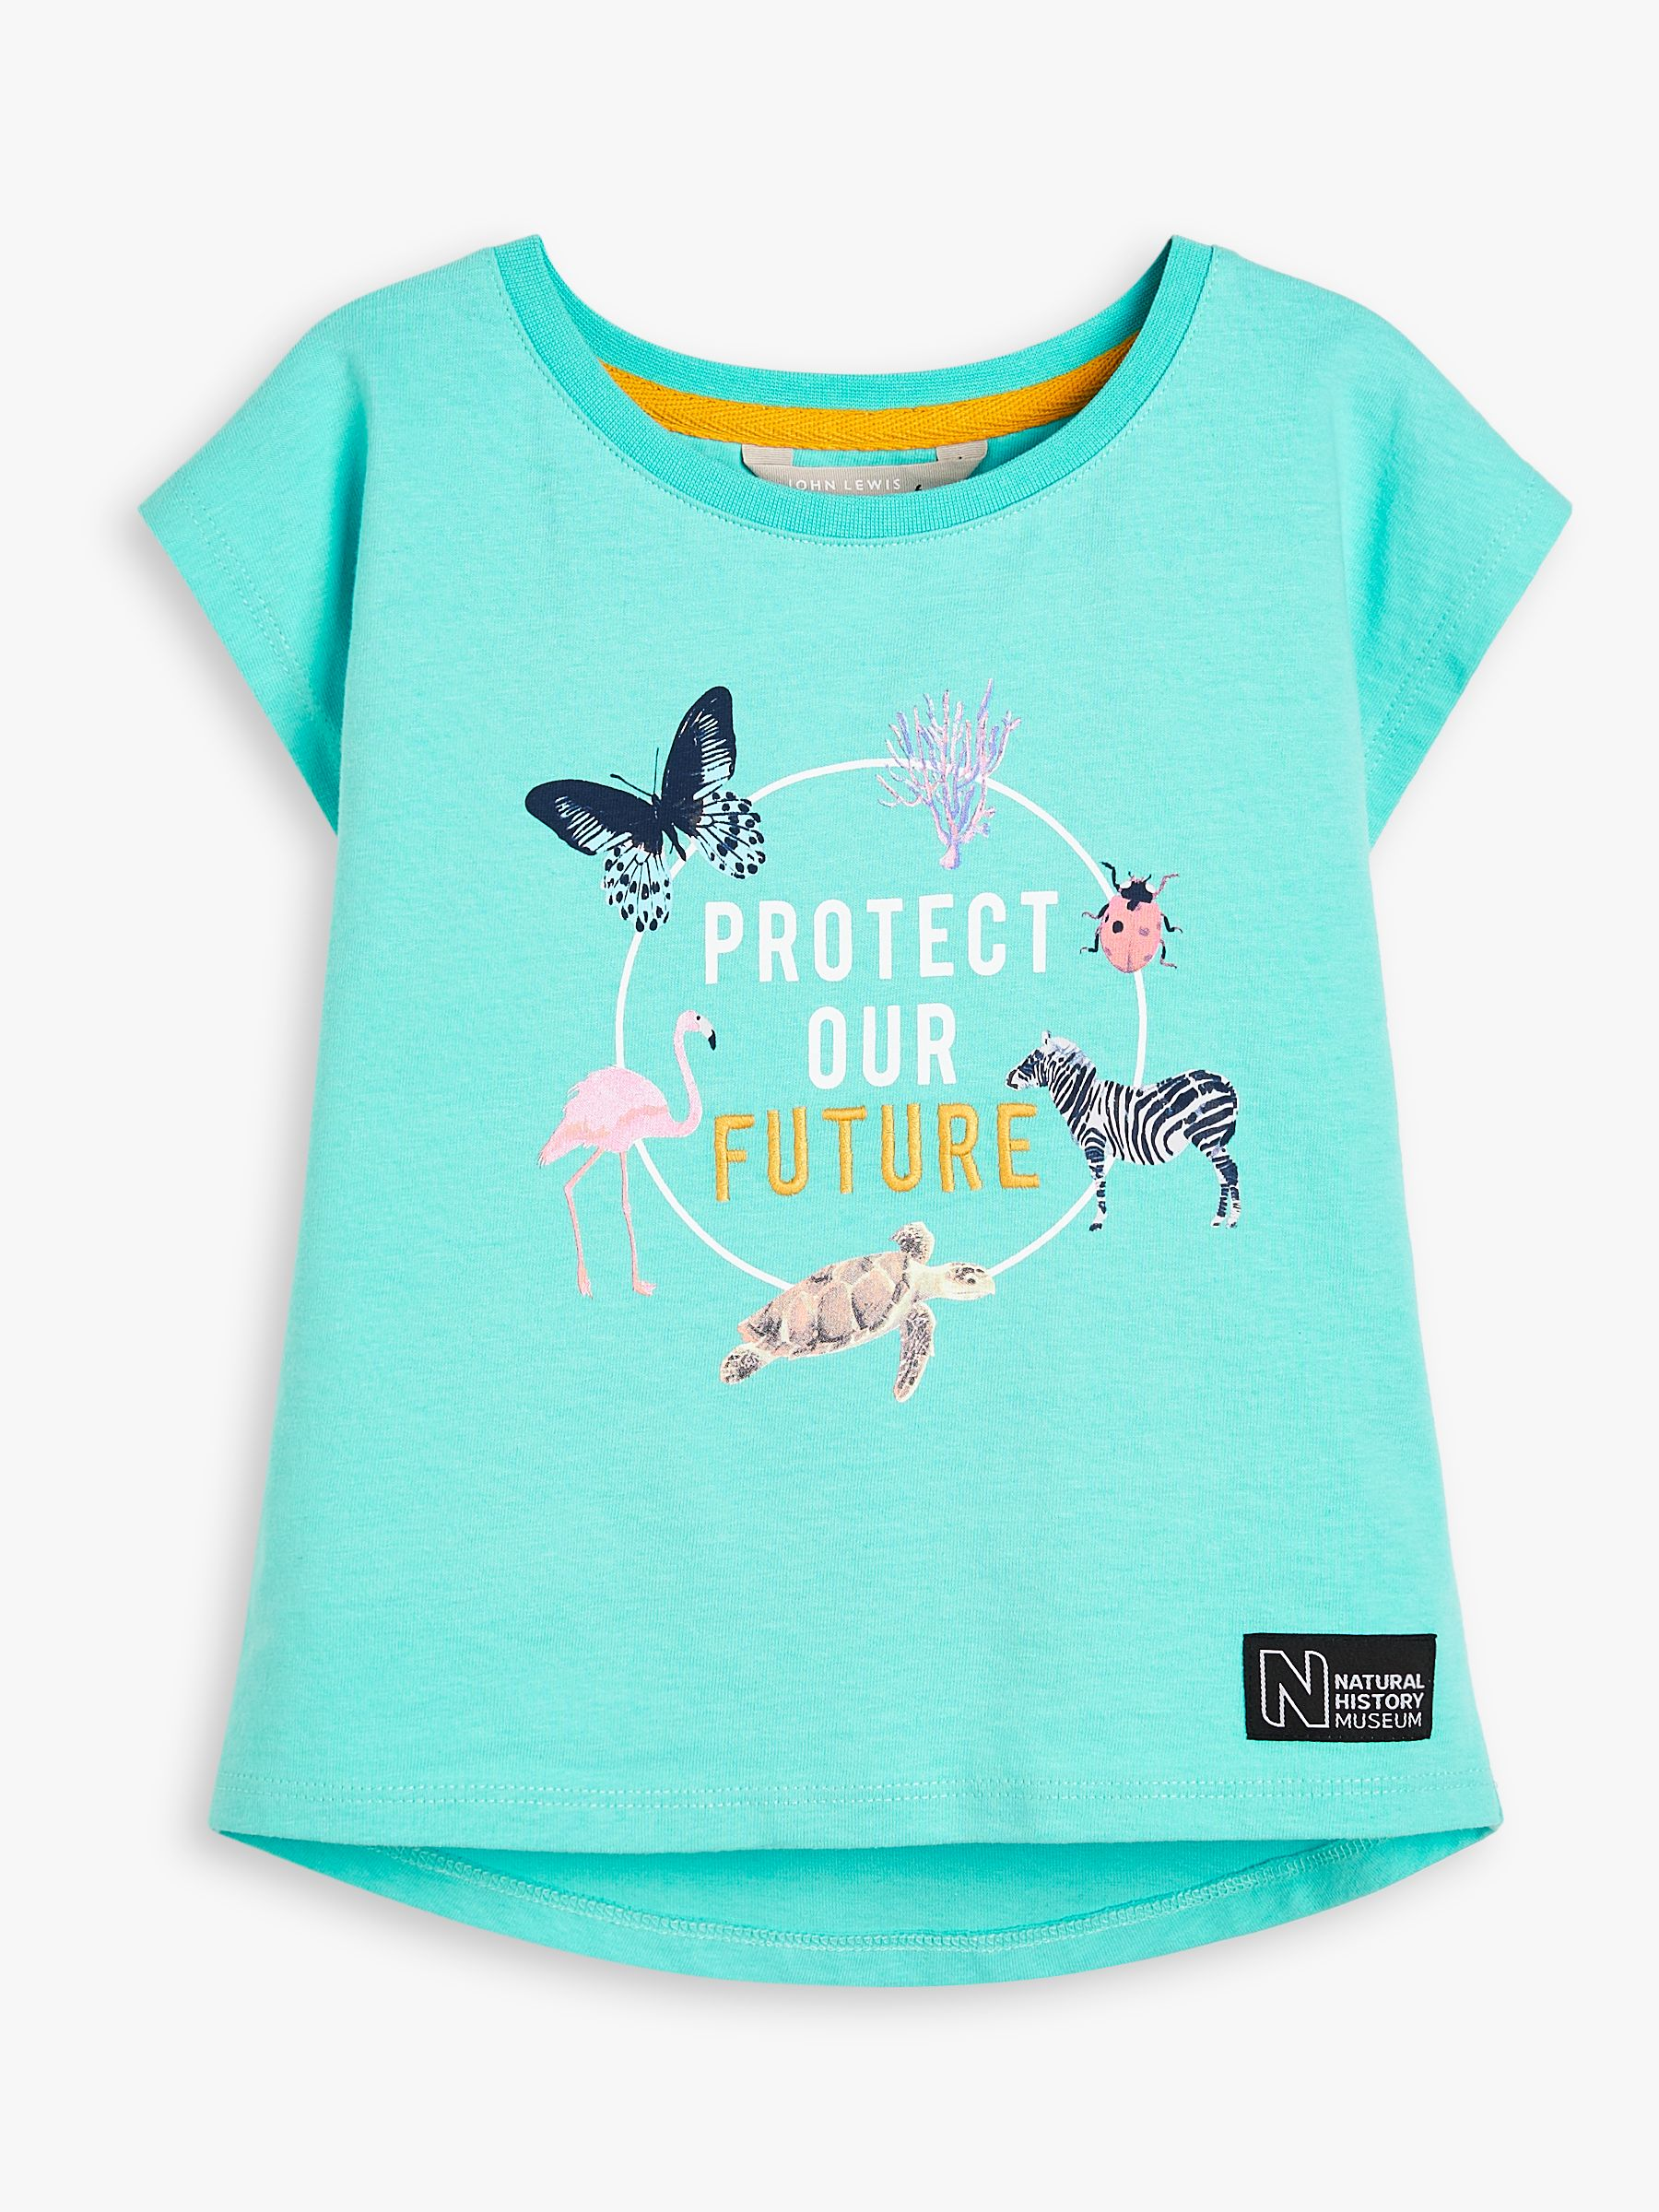 John Lewis & Partners X Natural History Museum Children's Protect Our Future T-Shirt, Turquoise